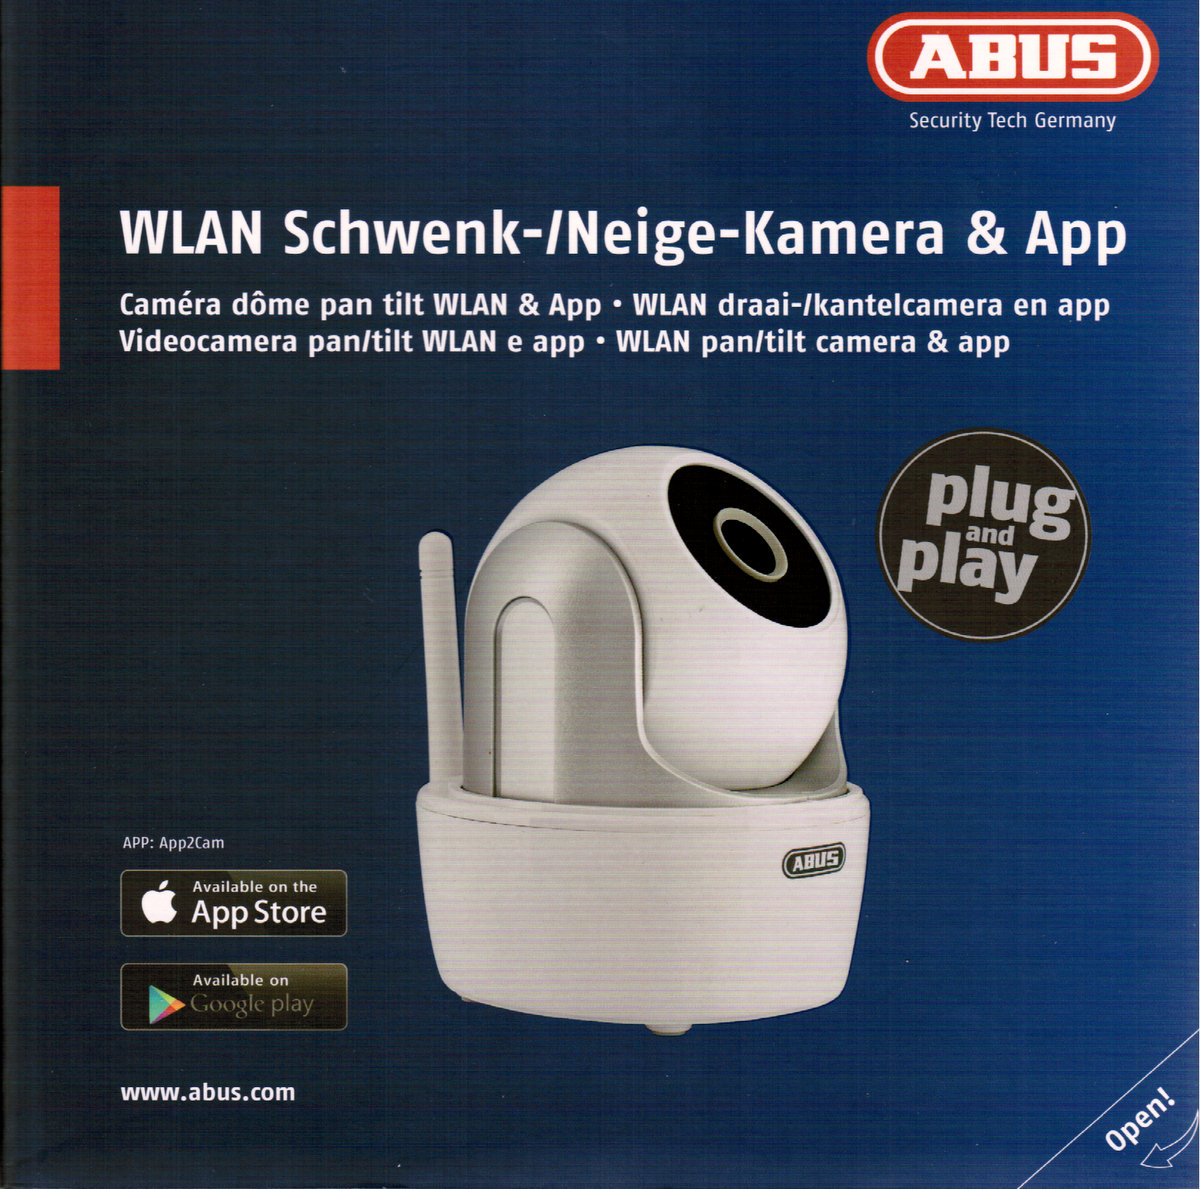 abus tvac19000a wlan schwenk neige kamera app berwachungskamera ebay. Black Bedroom Furniture Sets. Home Design Ideas